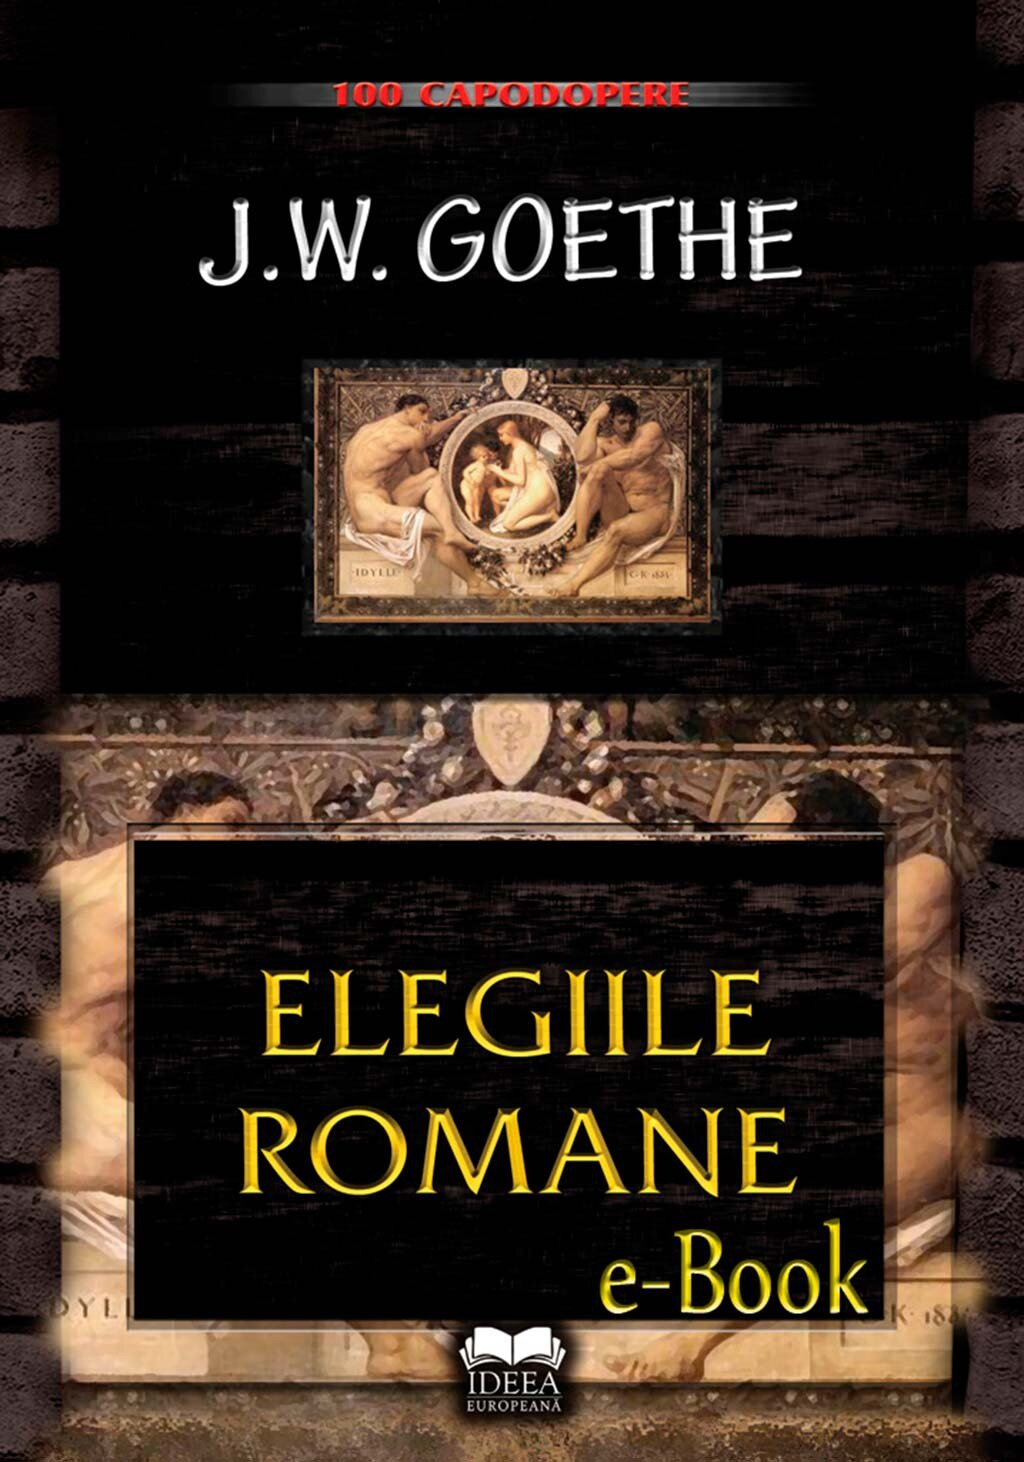 Elegiile romane (eBook)